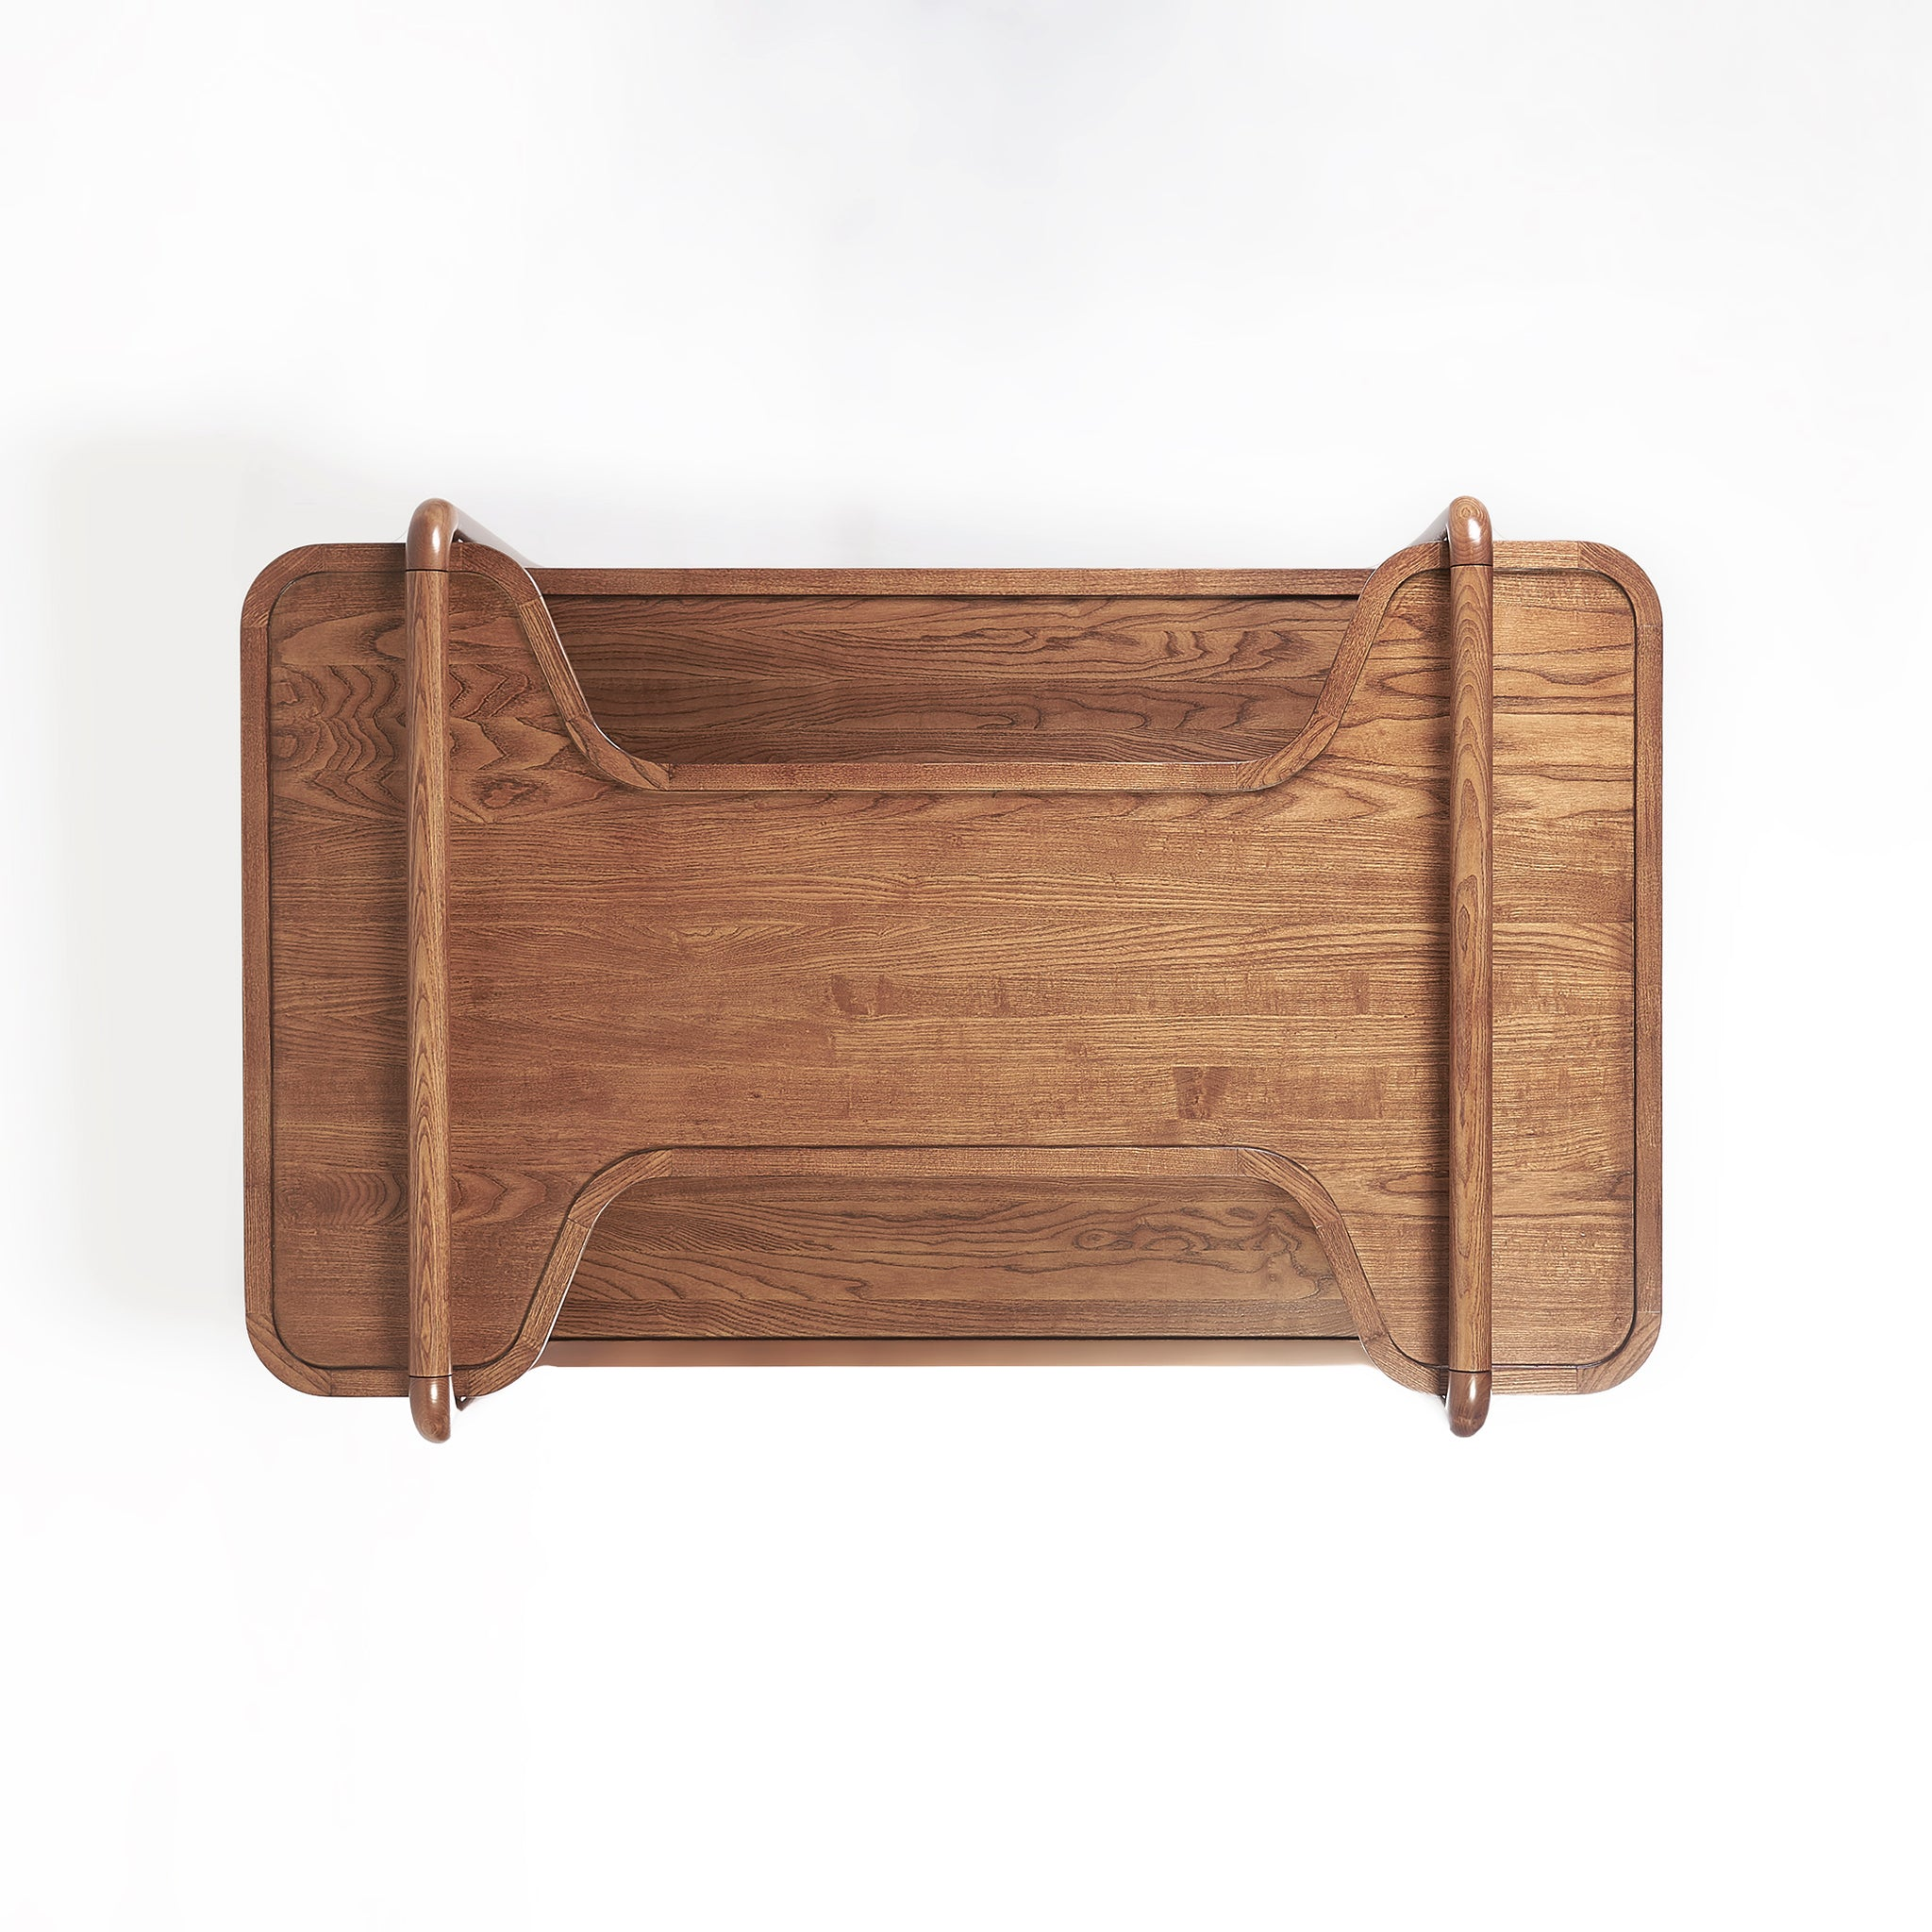 Delmarcos Modern Ash Coffee Table | ADDITIONAL 35% AT CHECKOUT CODE: RETRO MAN